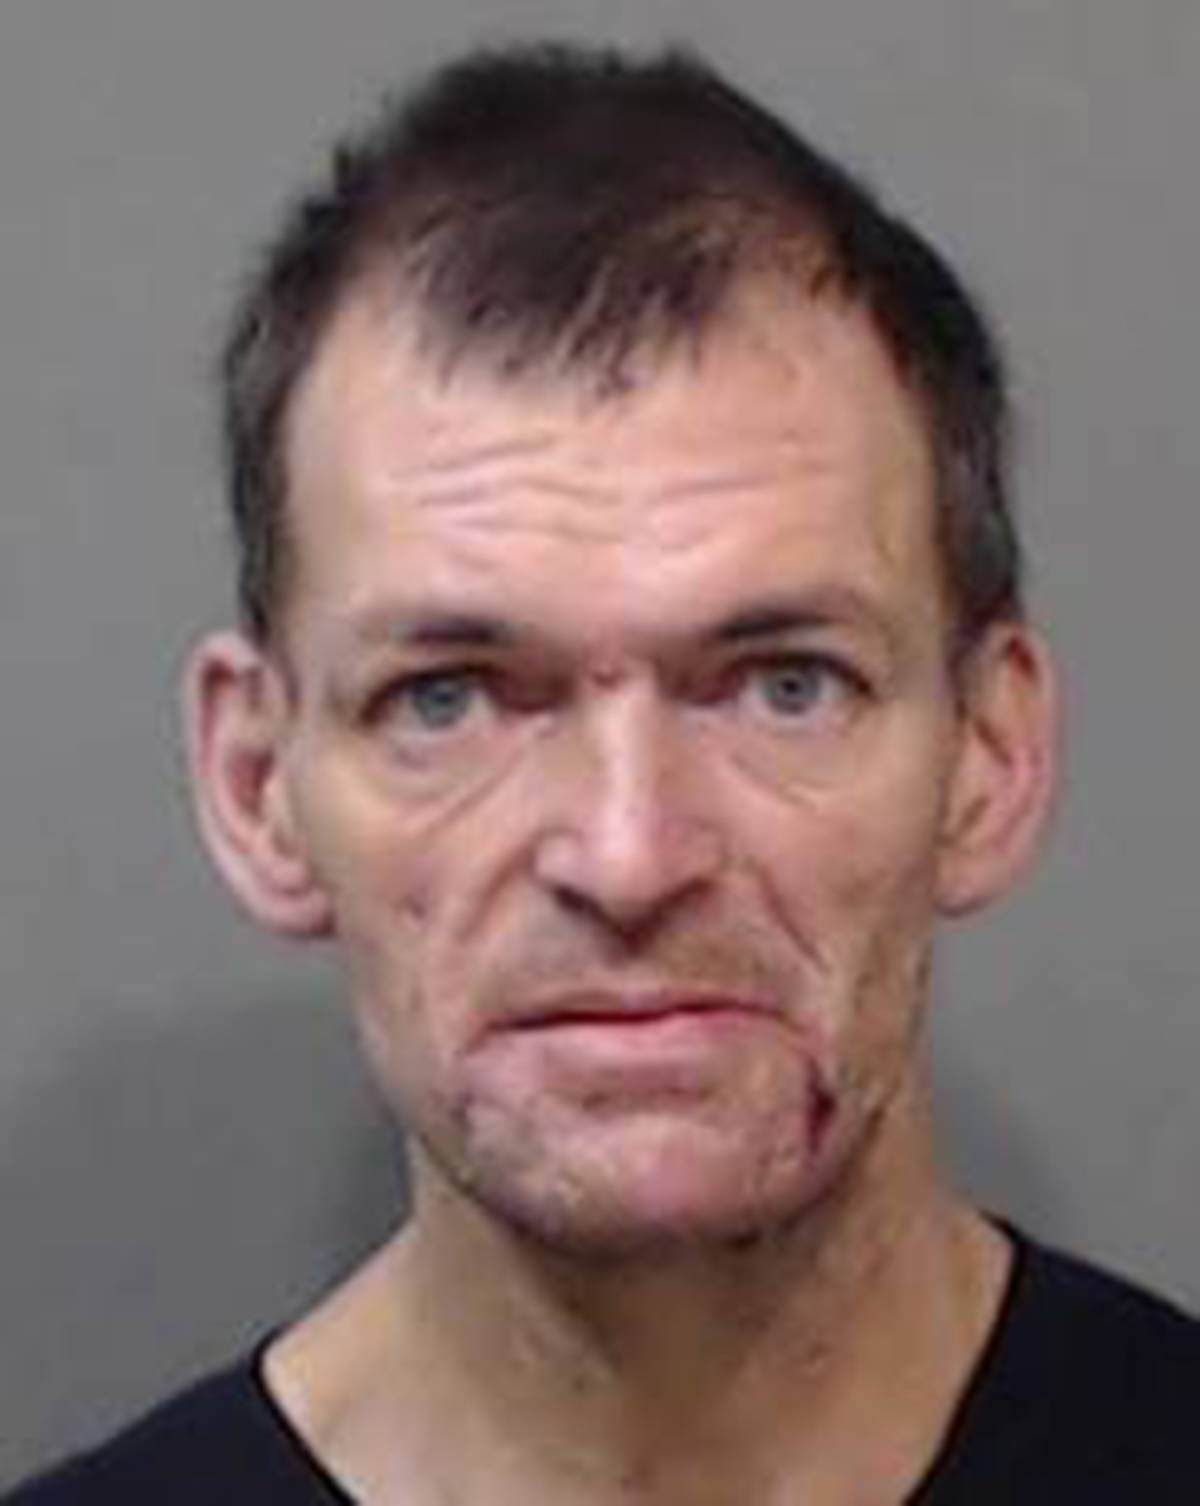 """Name: HARPER, Earle Age: 46 Height: 5'11"""" ft Weight: 186 lbs Hair: Brown Eyes: Blue Wanted: Failure to Comply with Probation Warrant in effect: March 4, 2021 Parole Jurisdiction: Chilliwack, B.C."""